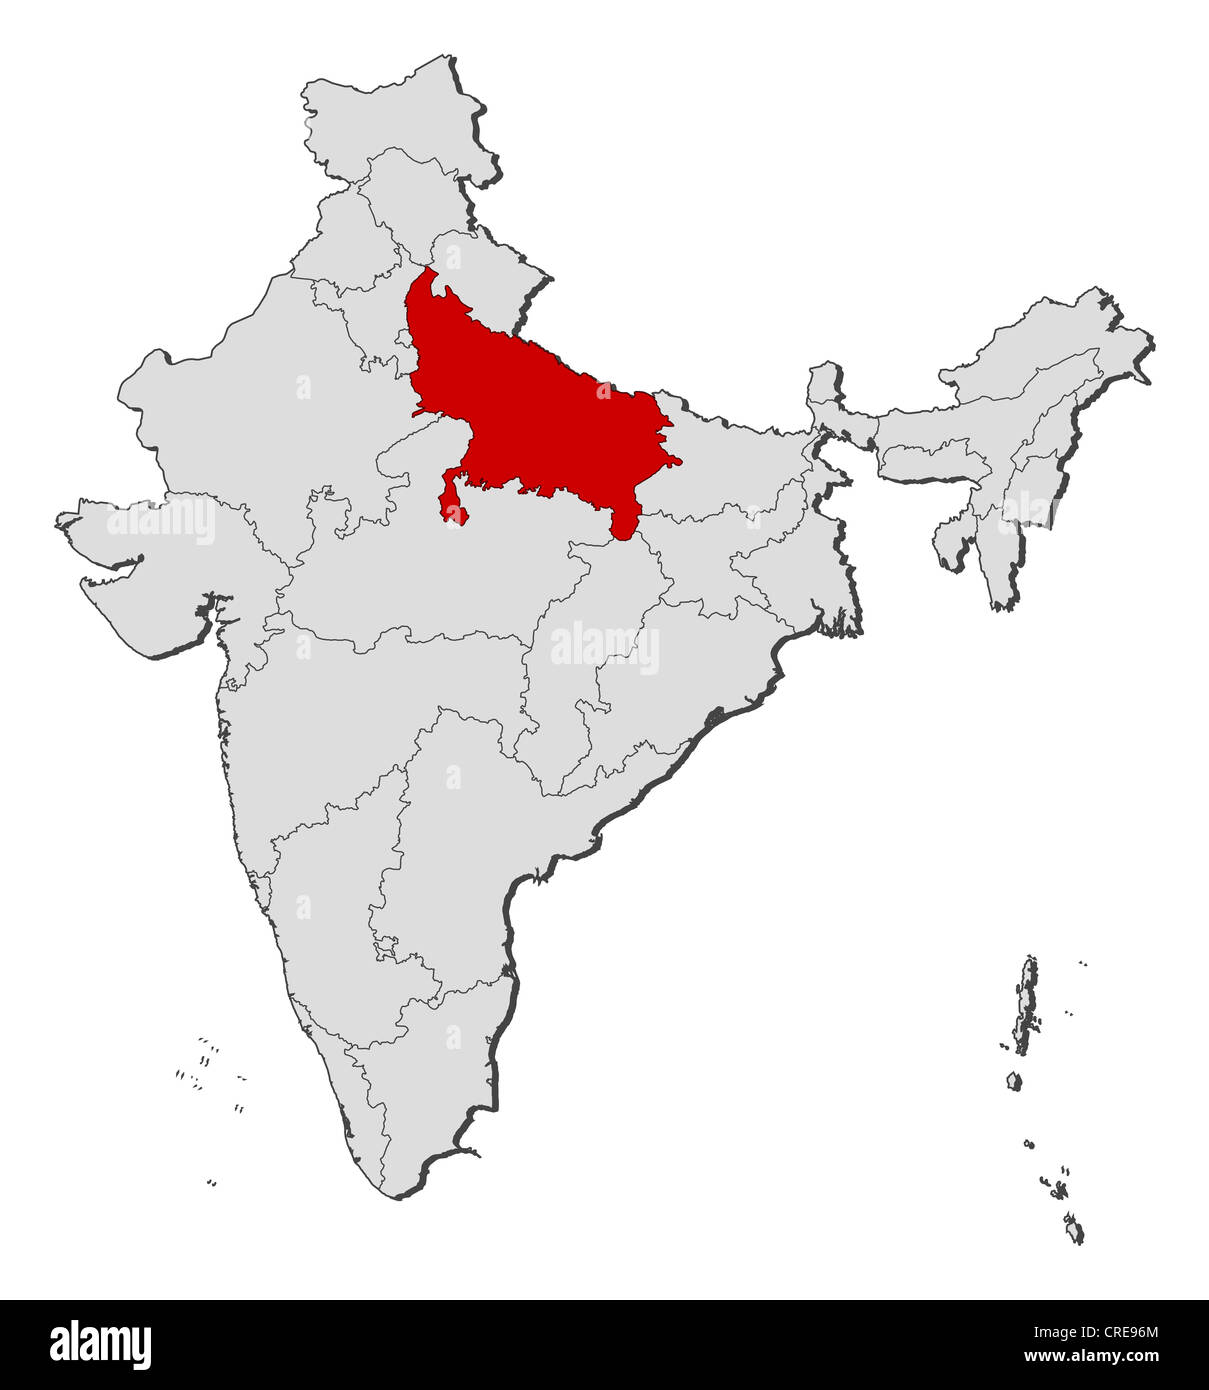 Political map of India with the several states where Uttar Pradesh on pitchers from india, top religions in india, world atlas, globe india, mountains in india, world continents india, world yoga day in india, digital technology in india, most beautiful places india, states of india, goa india, world maps before 1859, skype india, mumbai india, geography india, animals india, places in india, world from vietnam, kashmir india, people india,